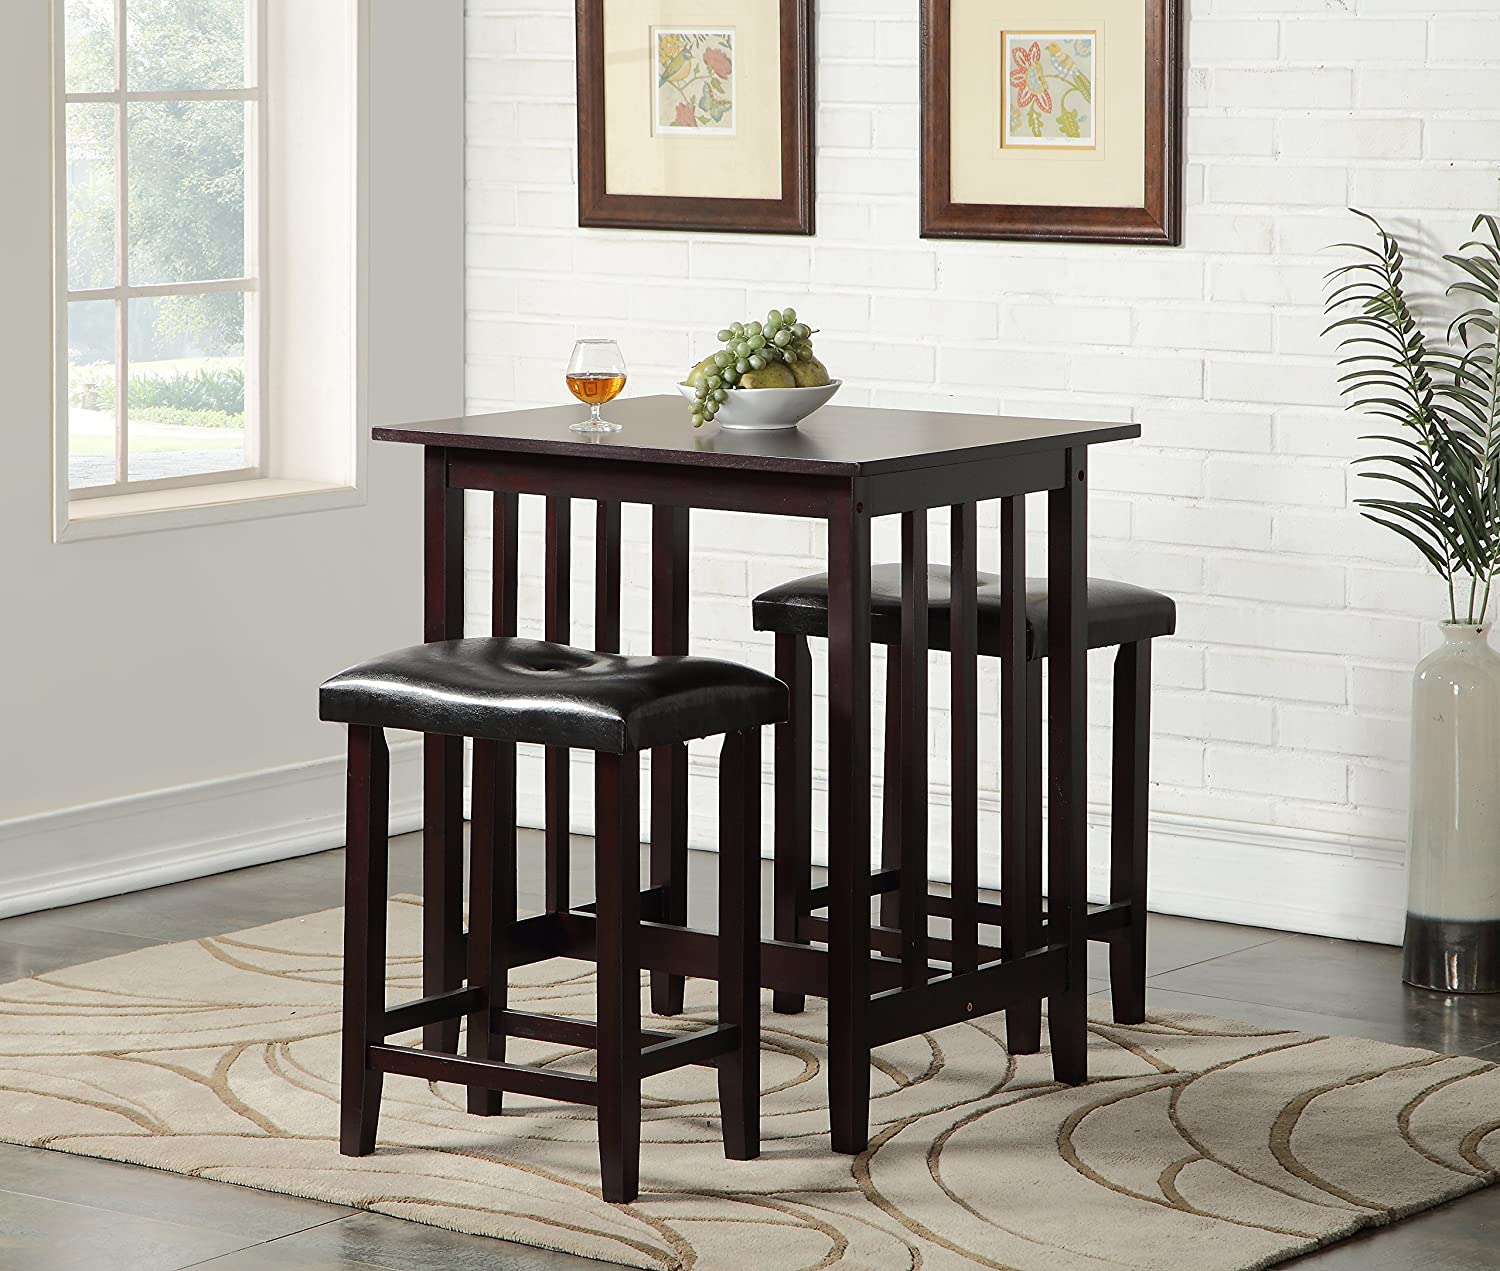 amazoncom roundhill furniture 3piece counter height dining set with saddleback stools espresso table u0026 chair sets